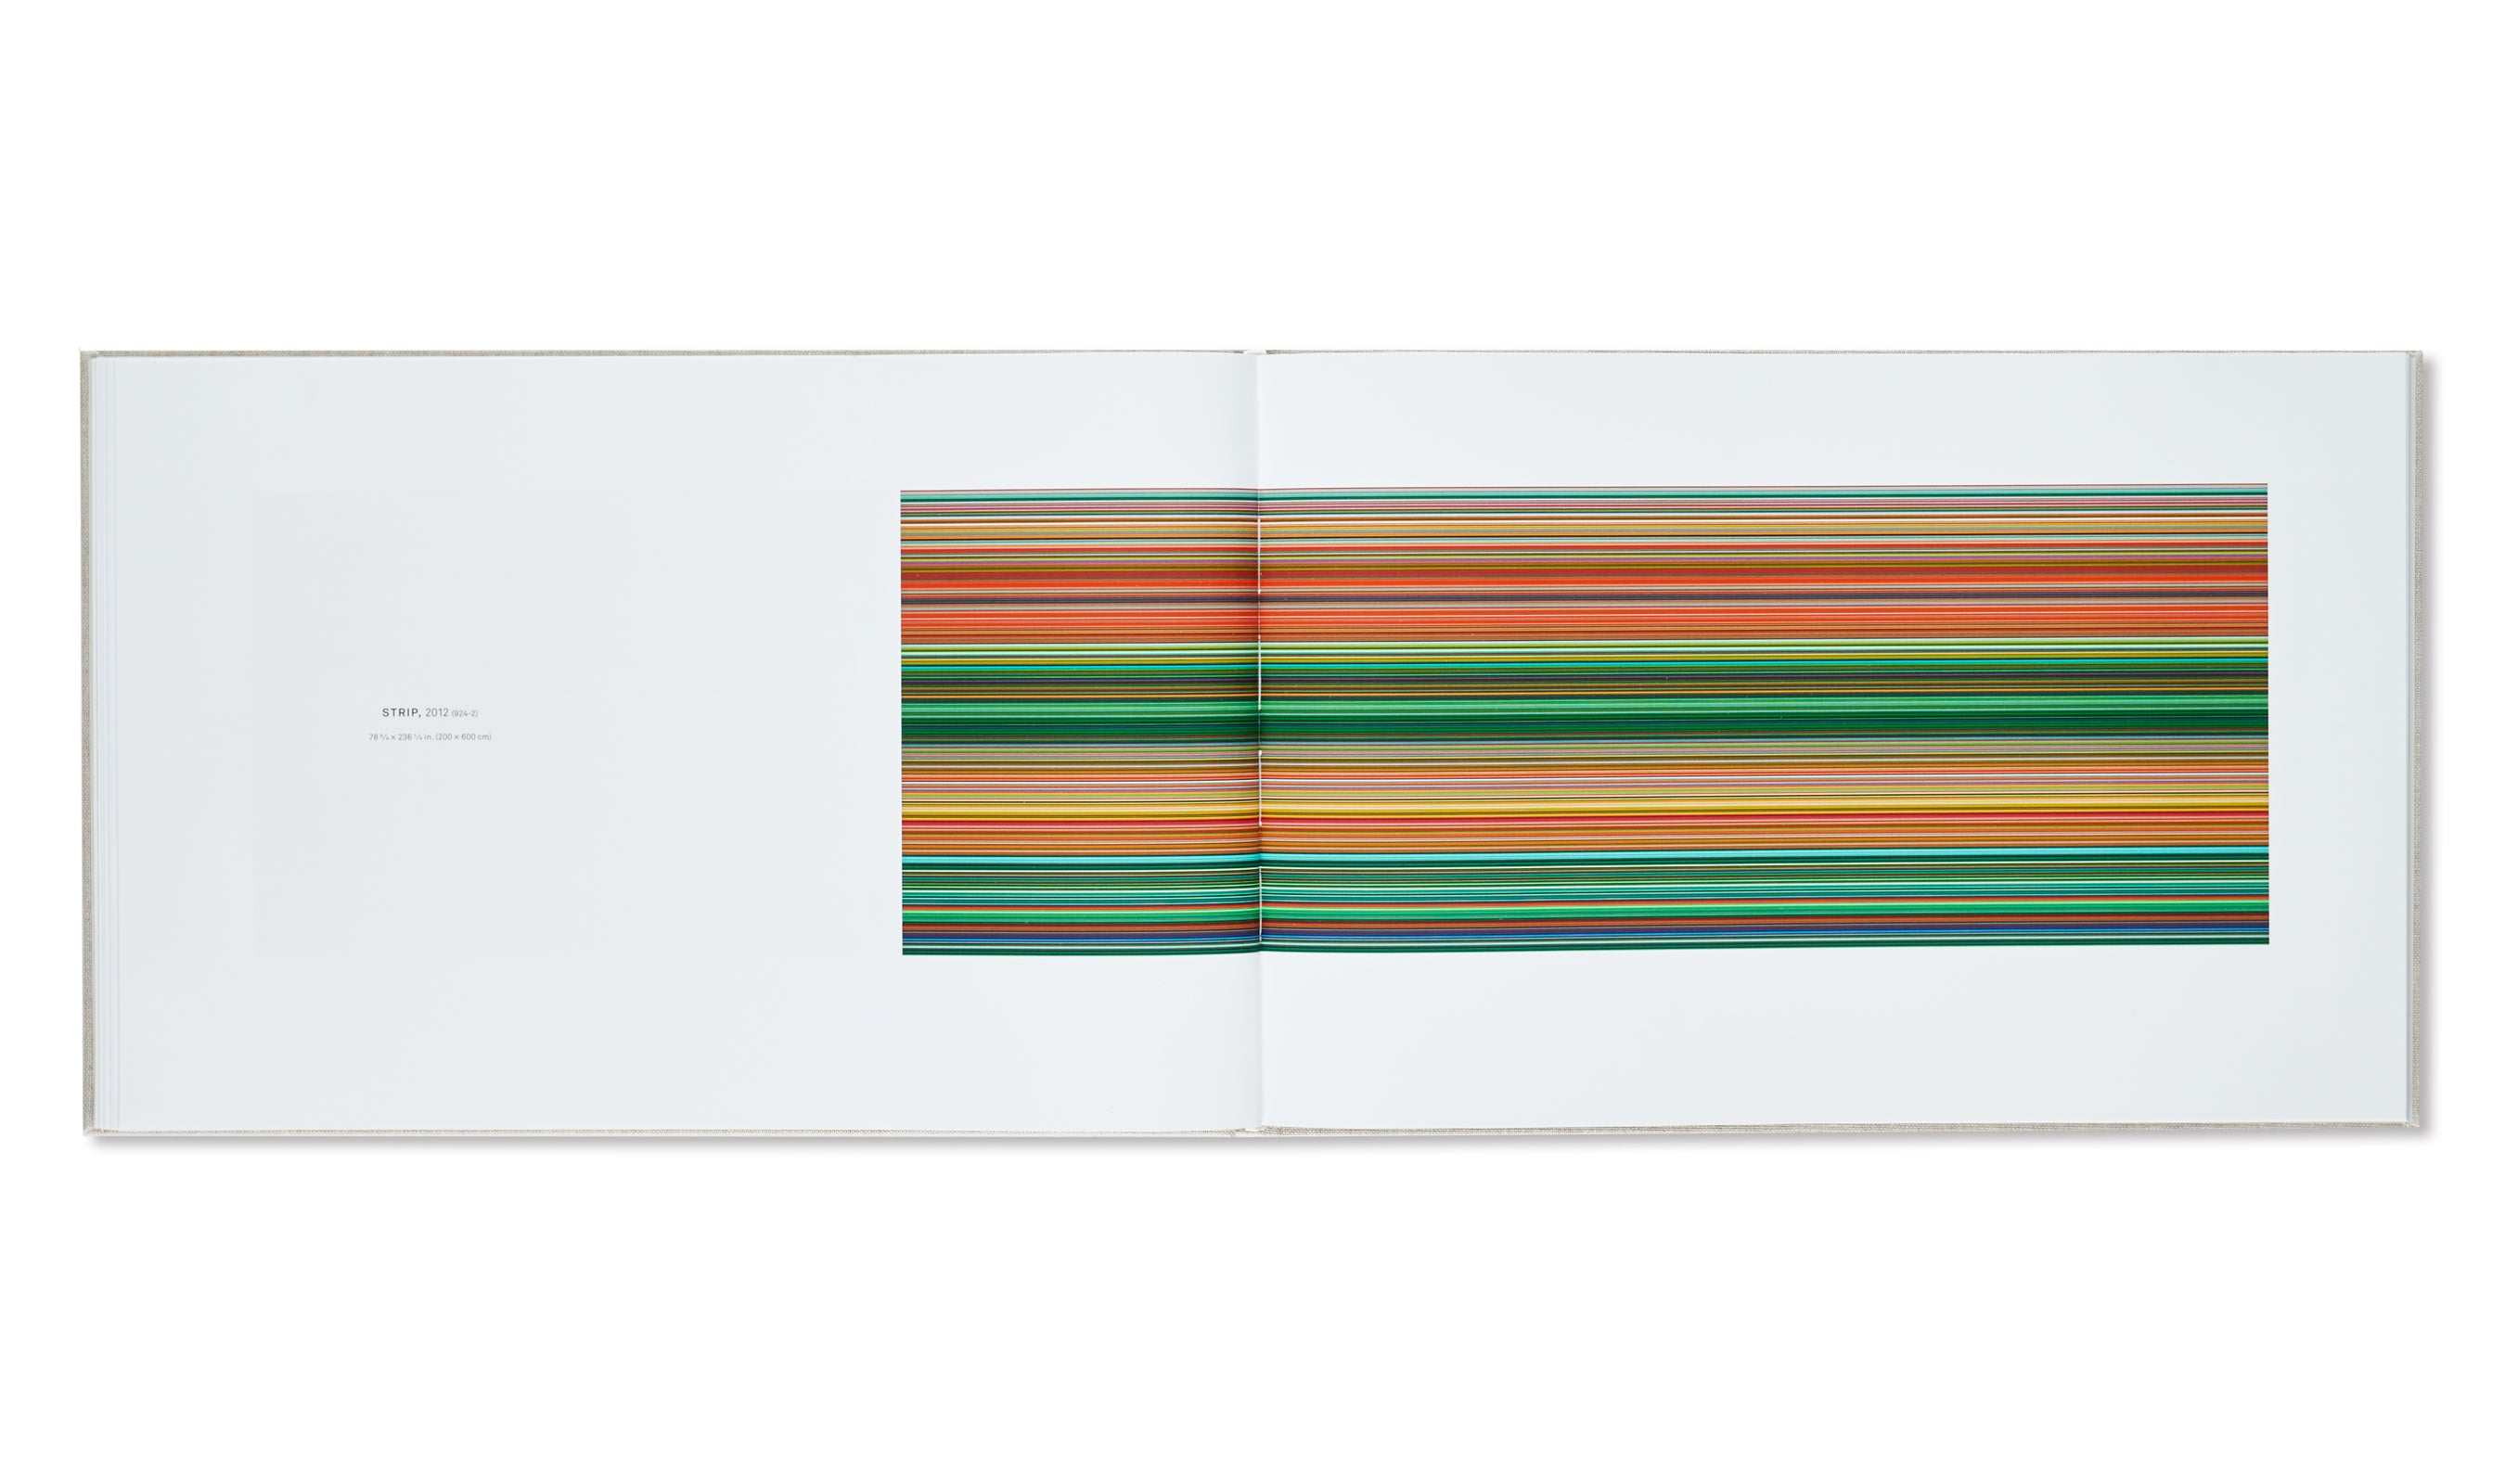 STRIP PAINTINGS by Gerhard Richter